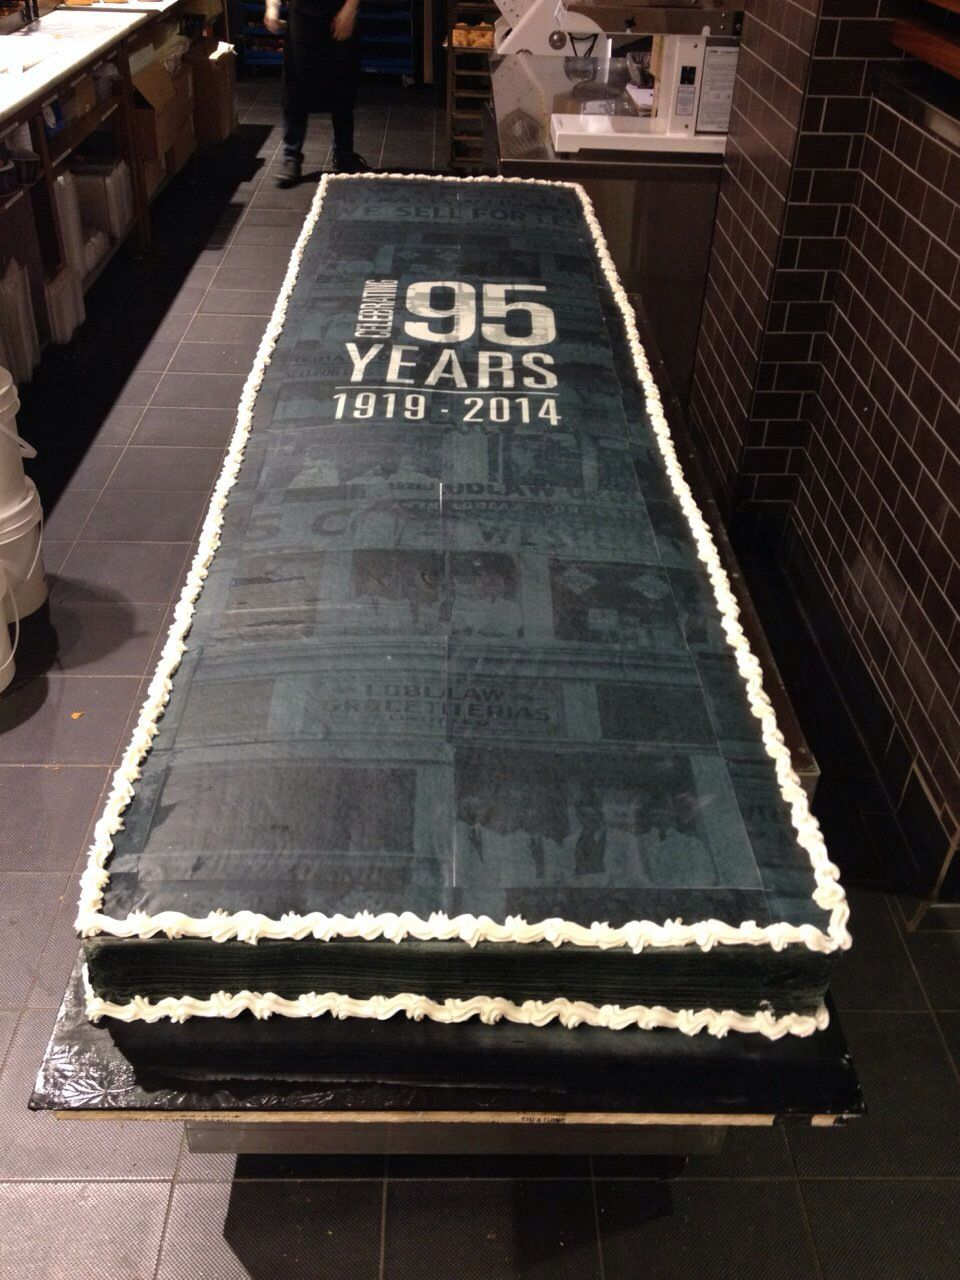 Celebrating Loblaws 95th Year Anniversary.